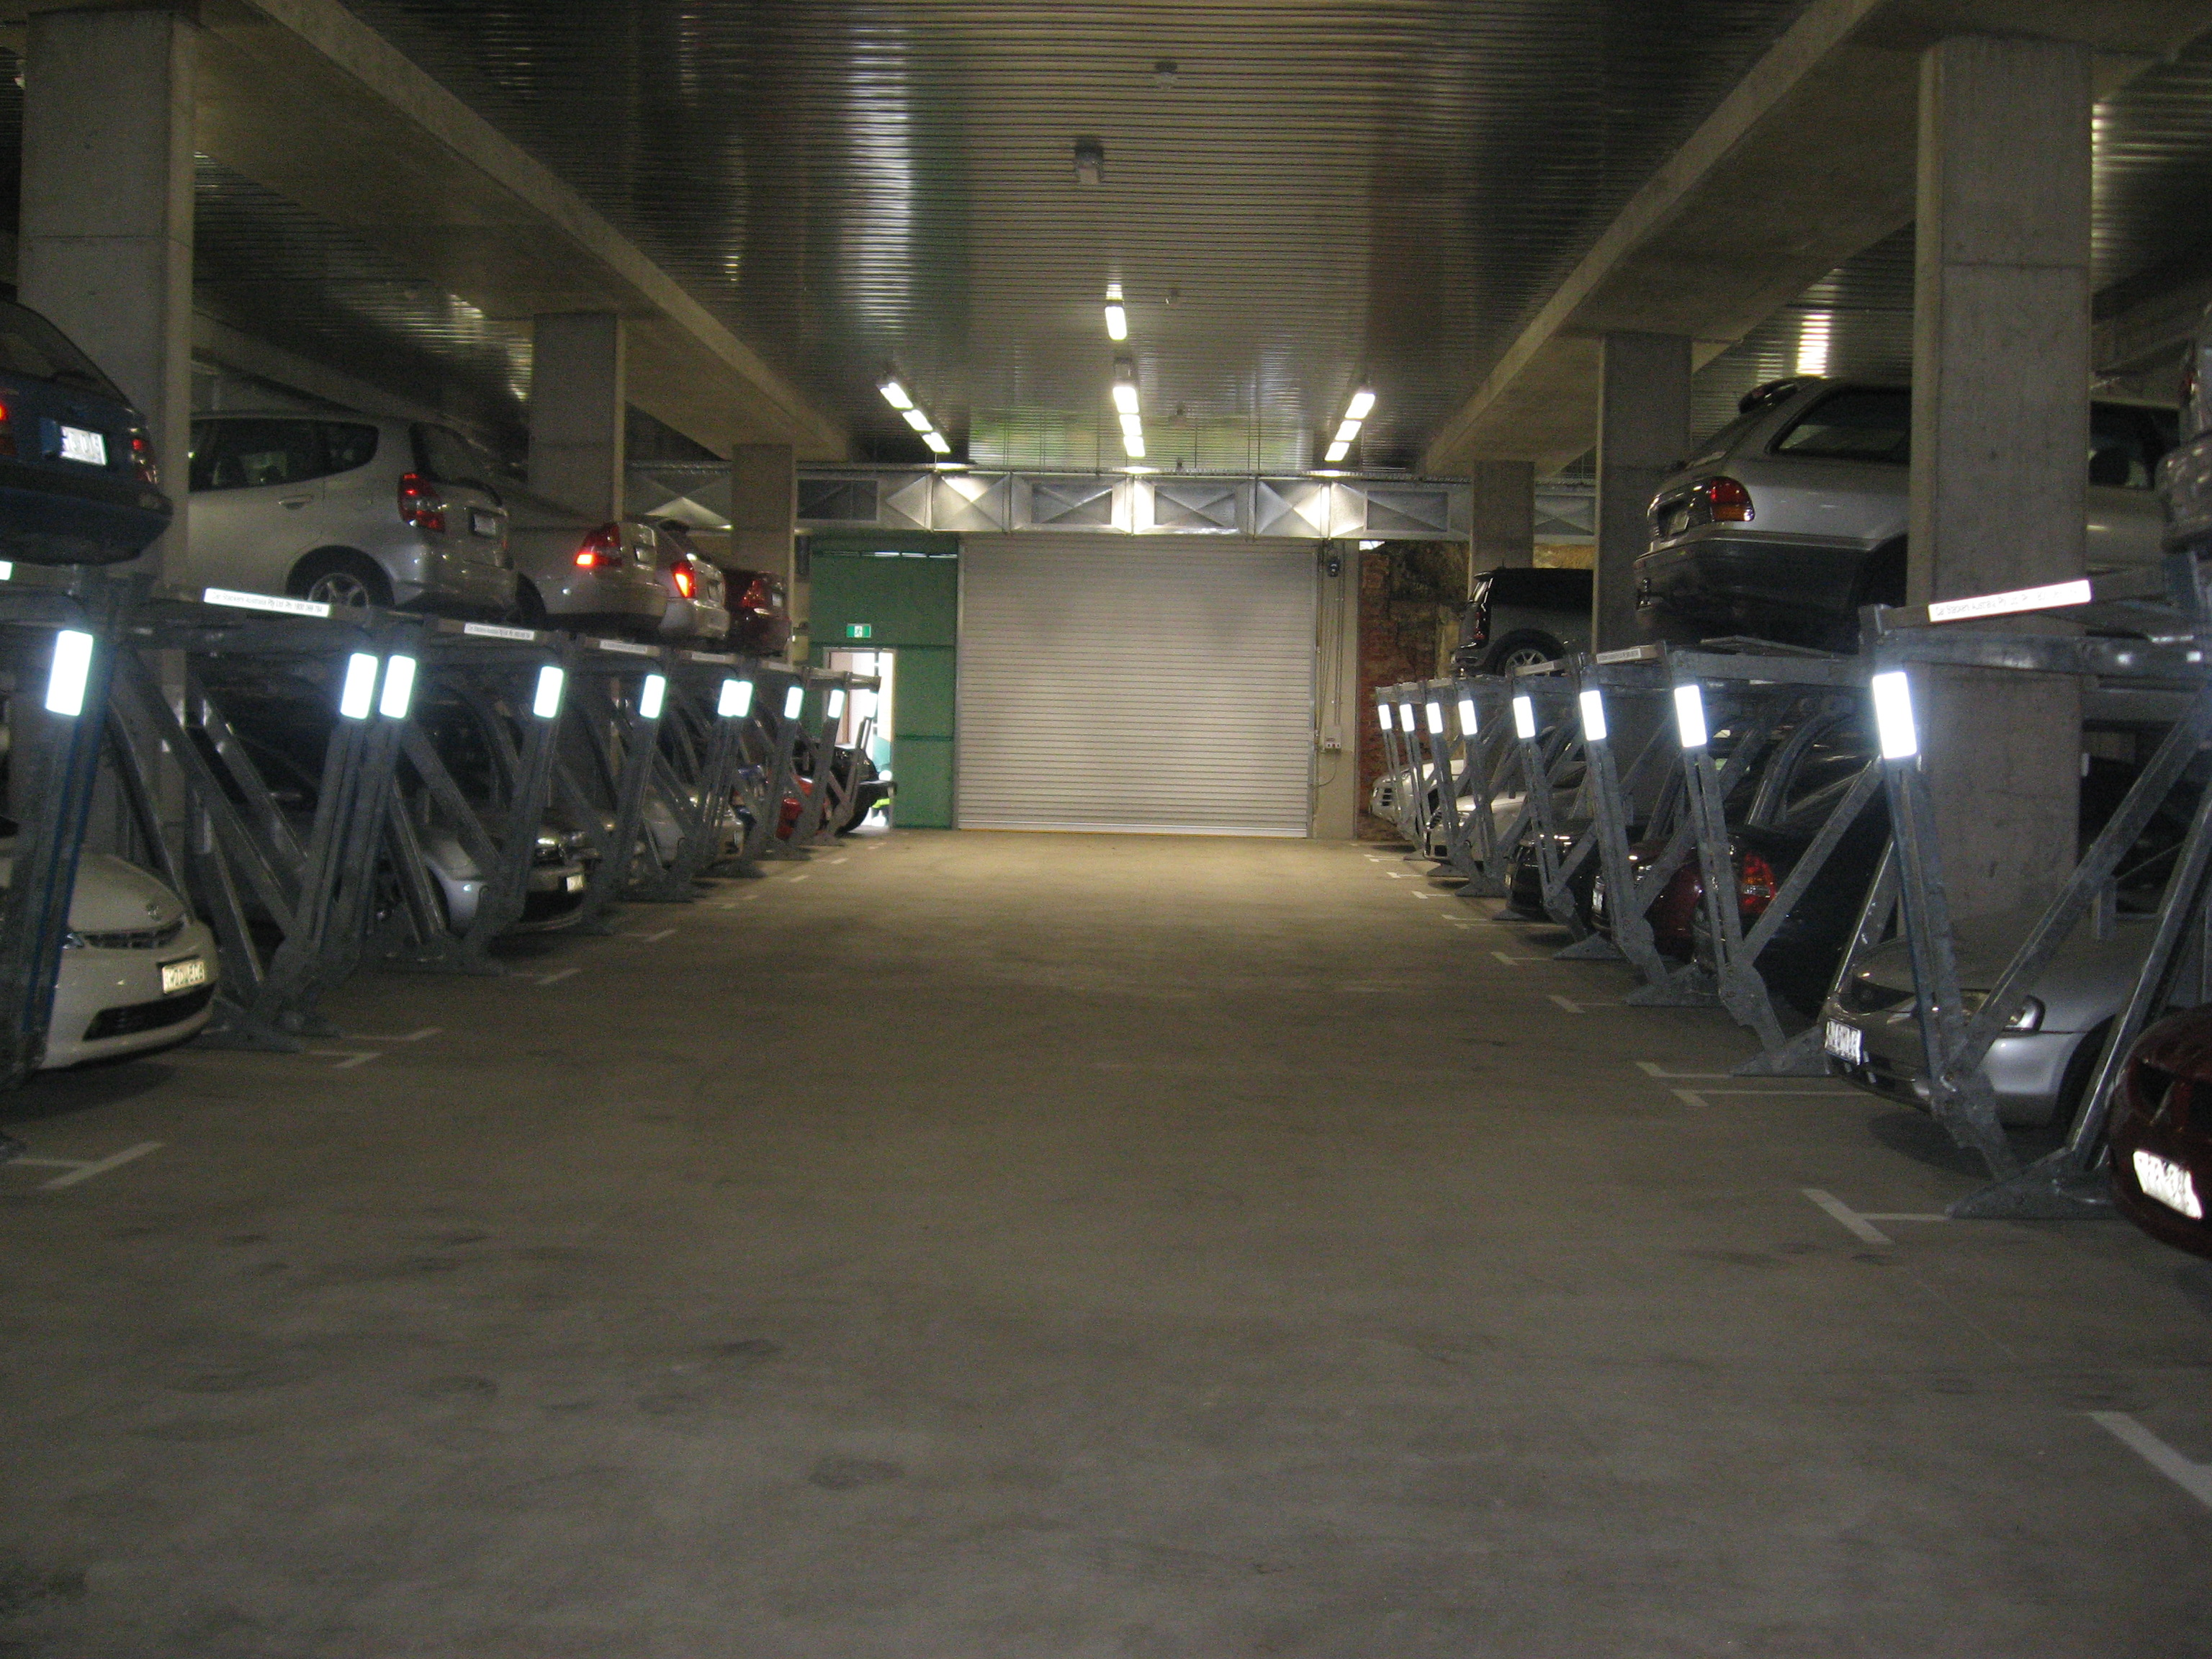 Evolution Double Parking System South Yarra VIC